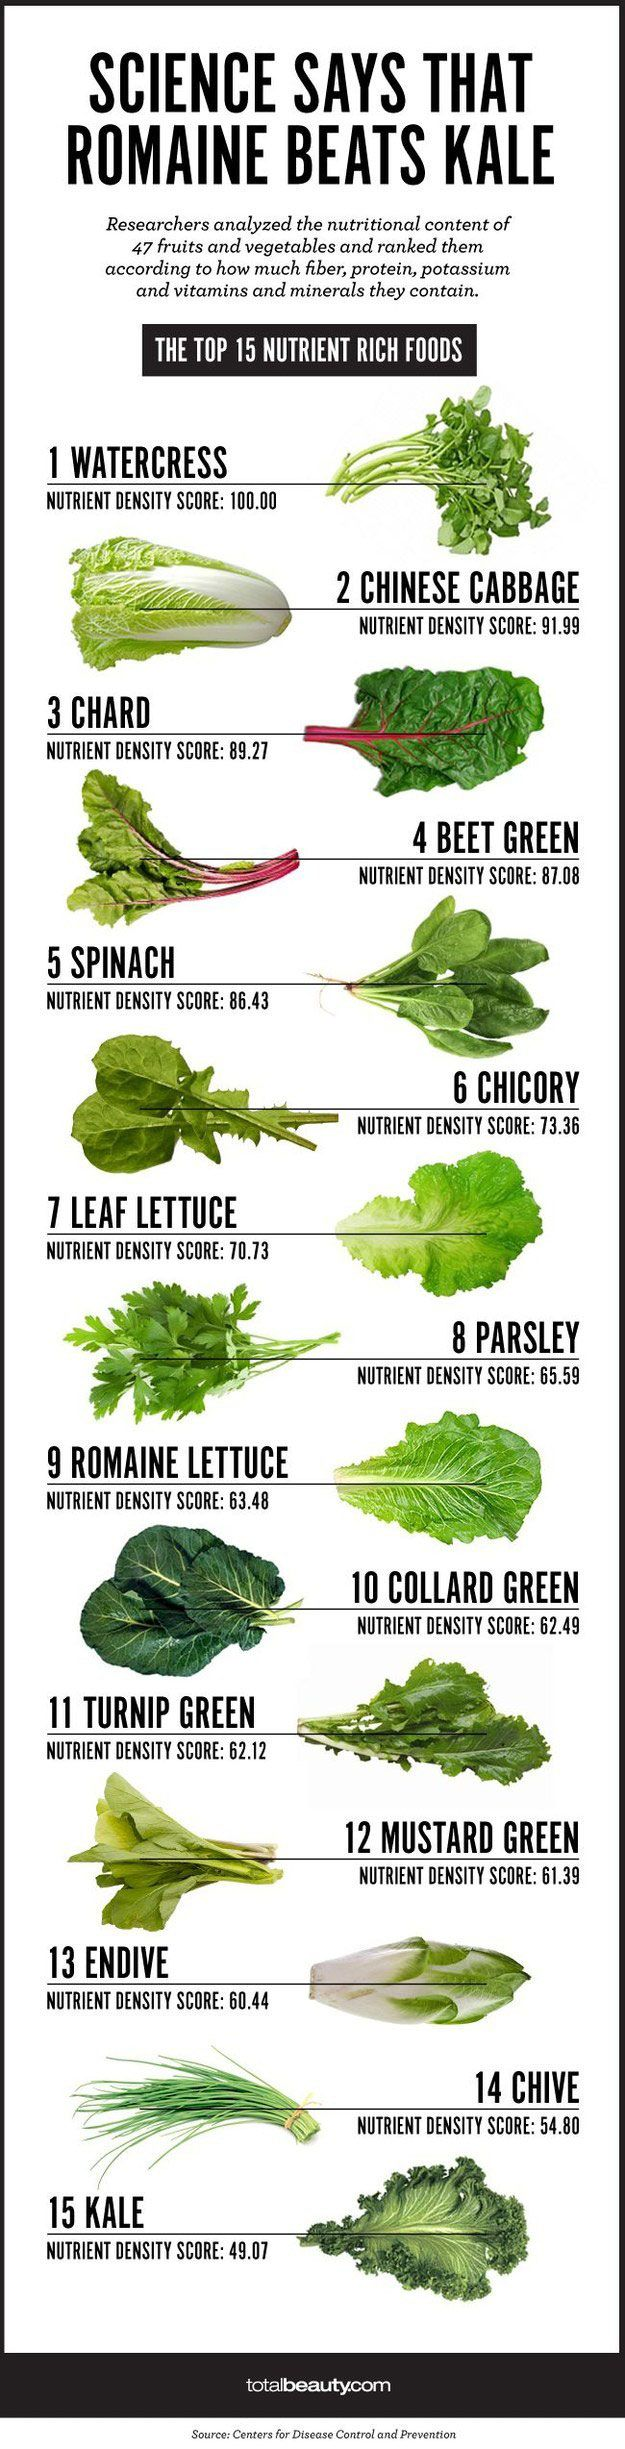 Healthy Eating - Nutrient Dense Leafy Greens | Homemade Recipes http://homemaderecipes.com/healthy/healthy-eating-diagrams